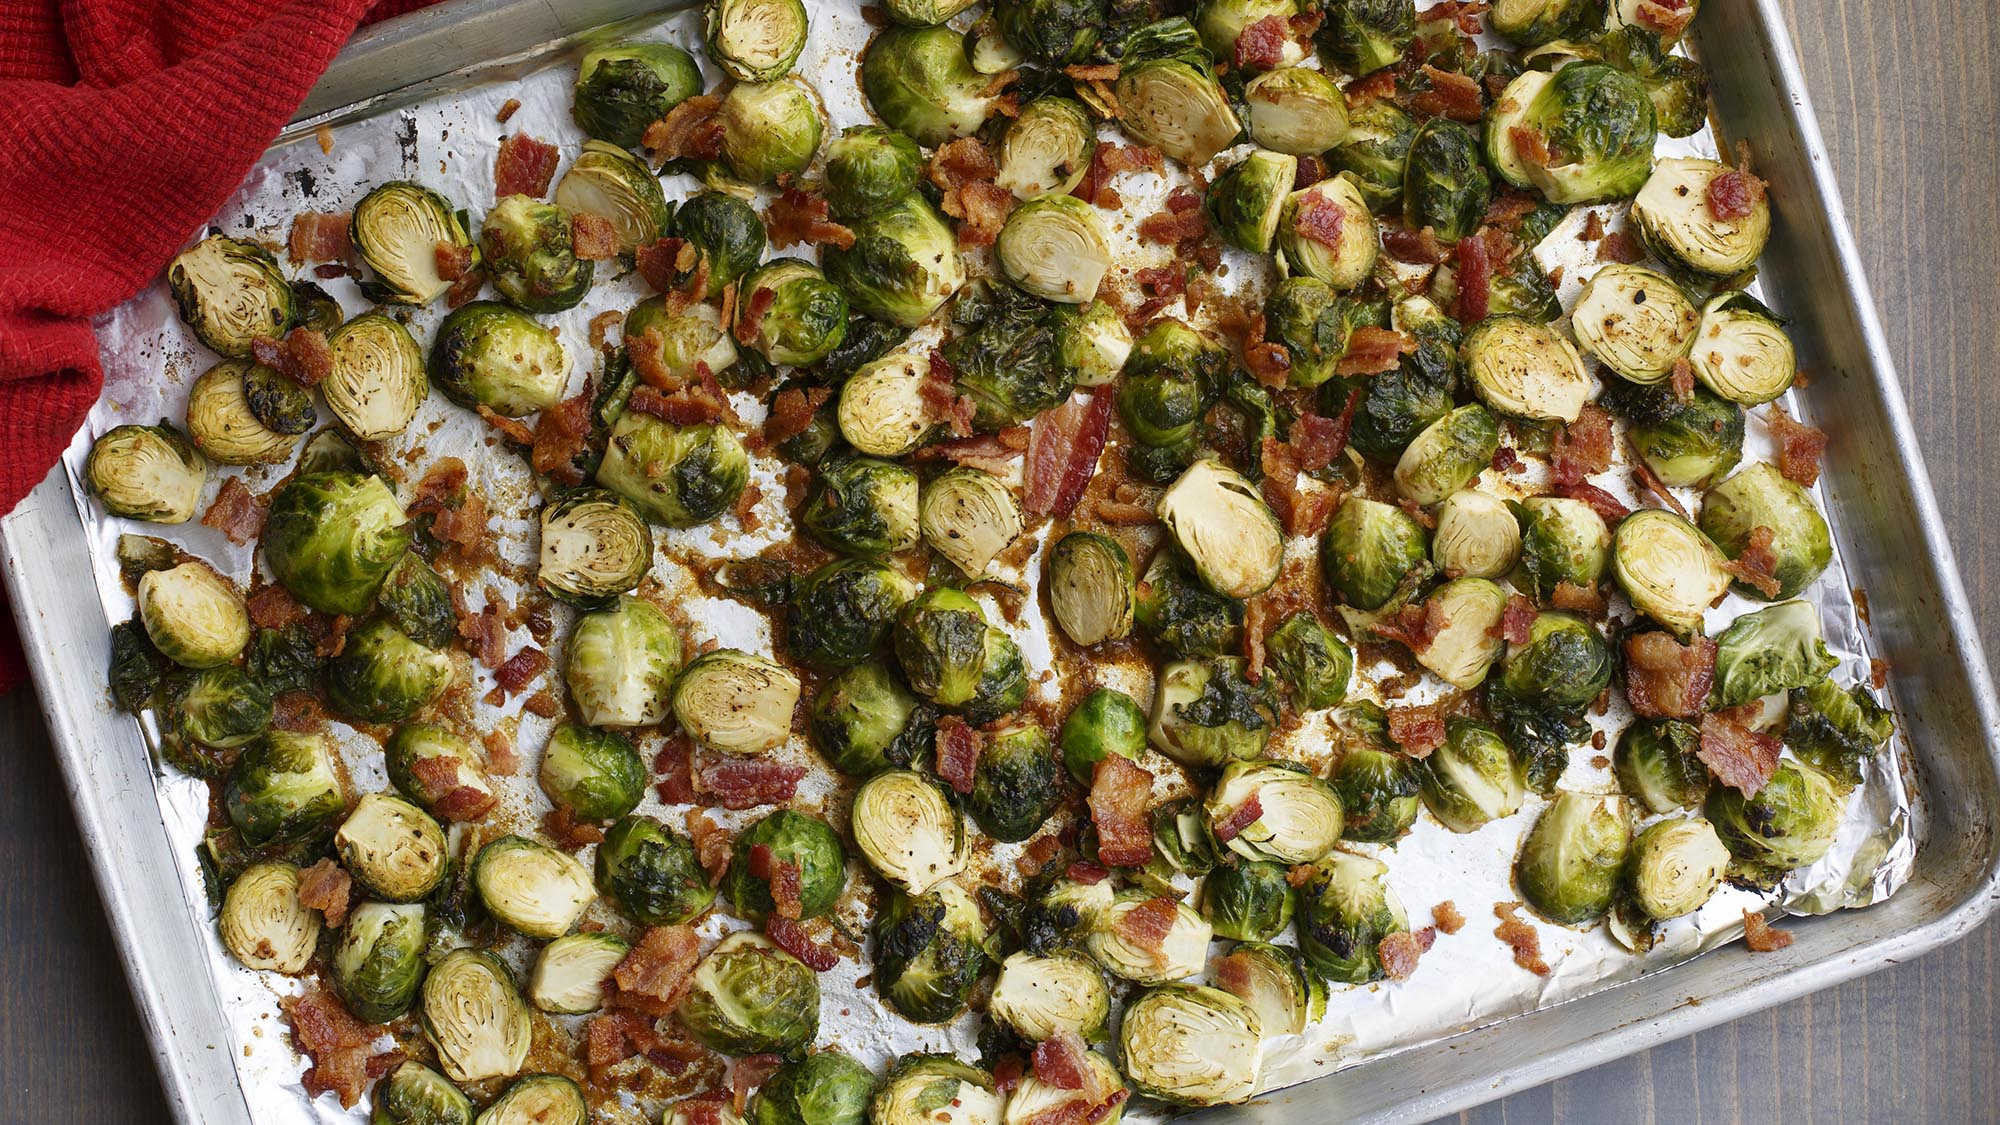 McCormick Oven-Roasted Brussels Sprouts